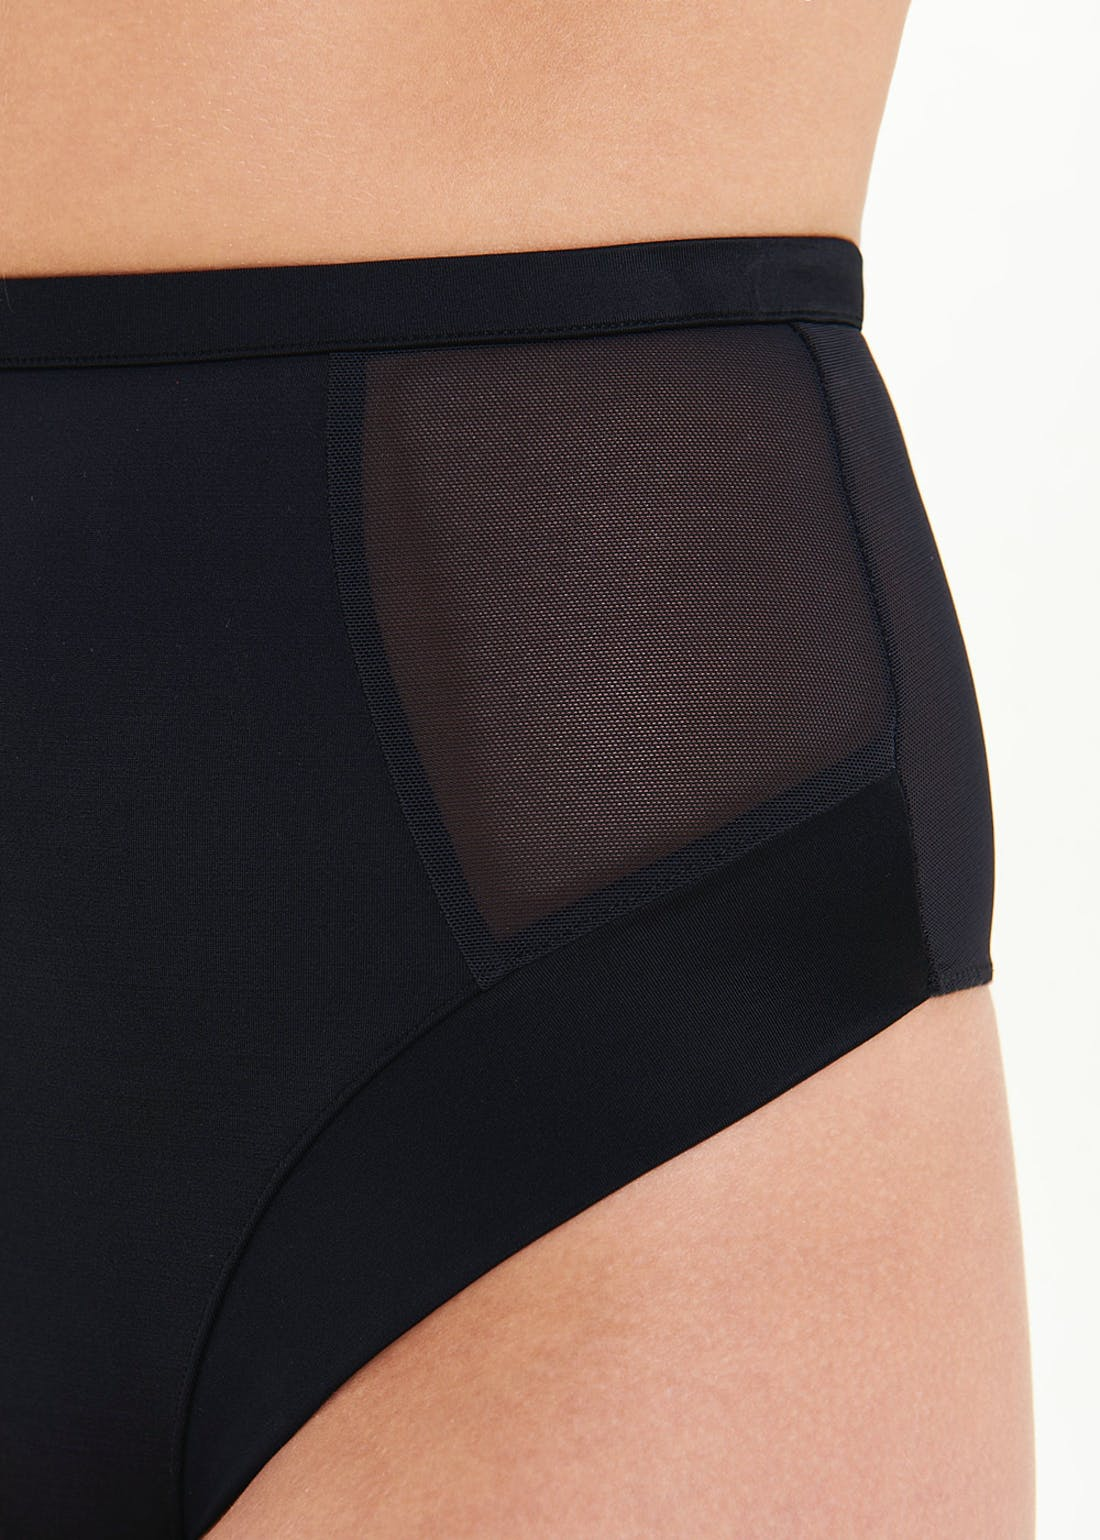 High Waisted Thong Control Knickers